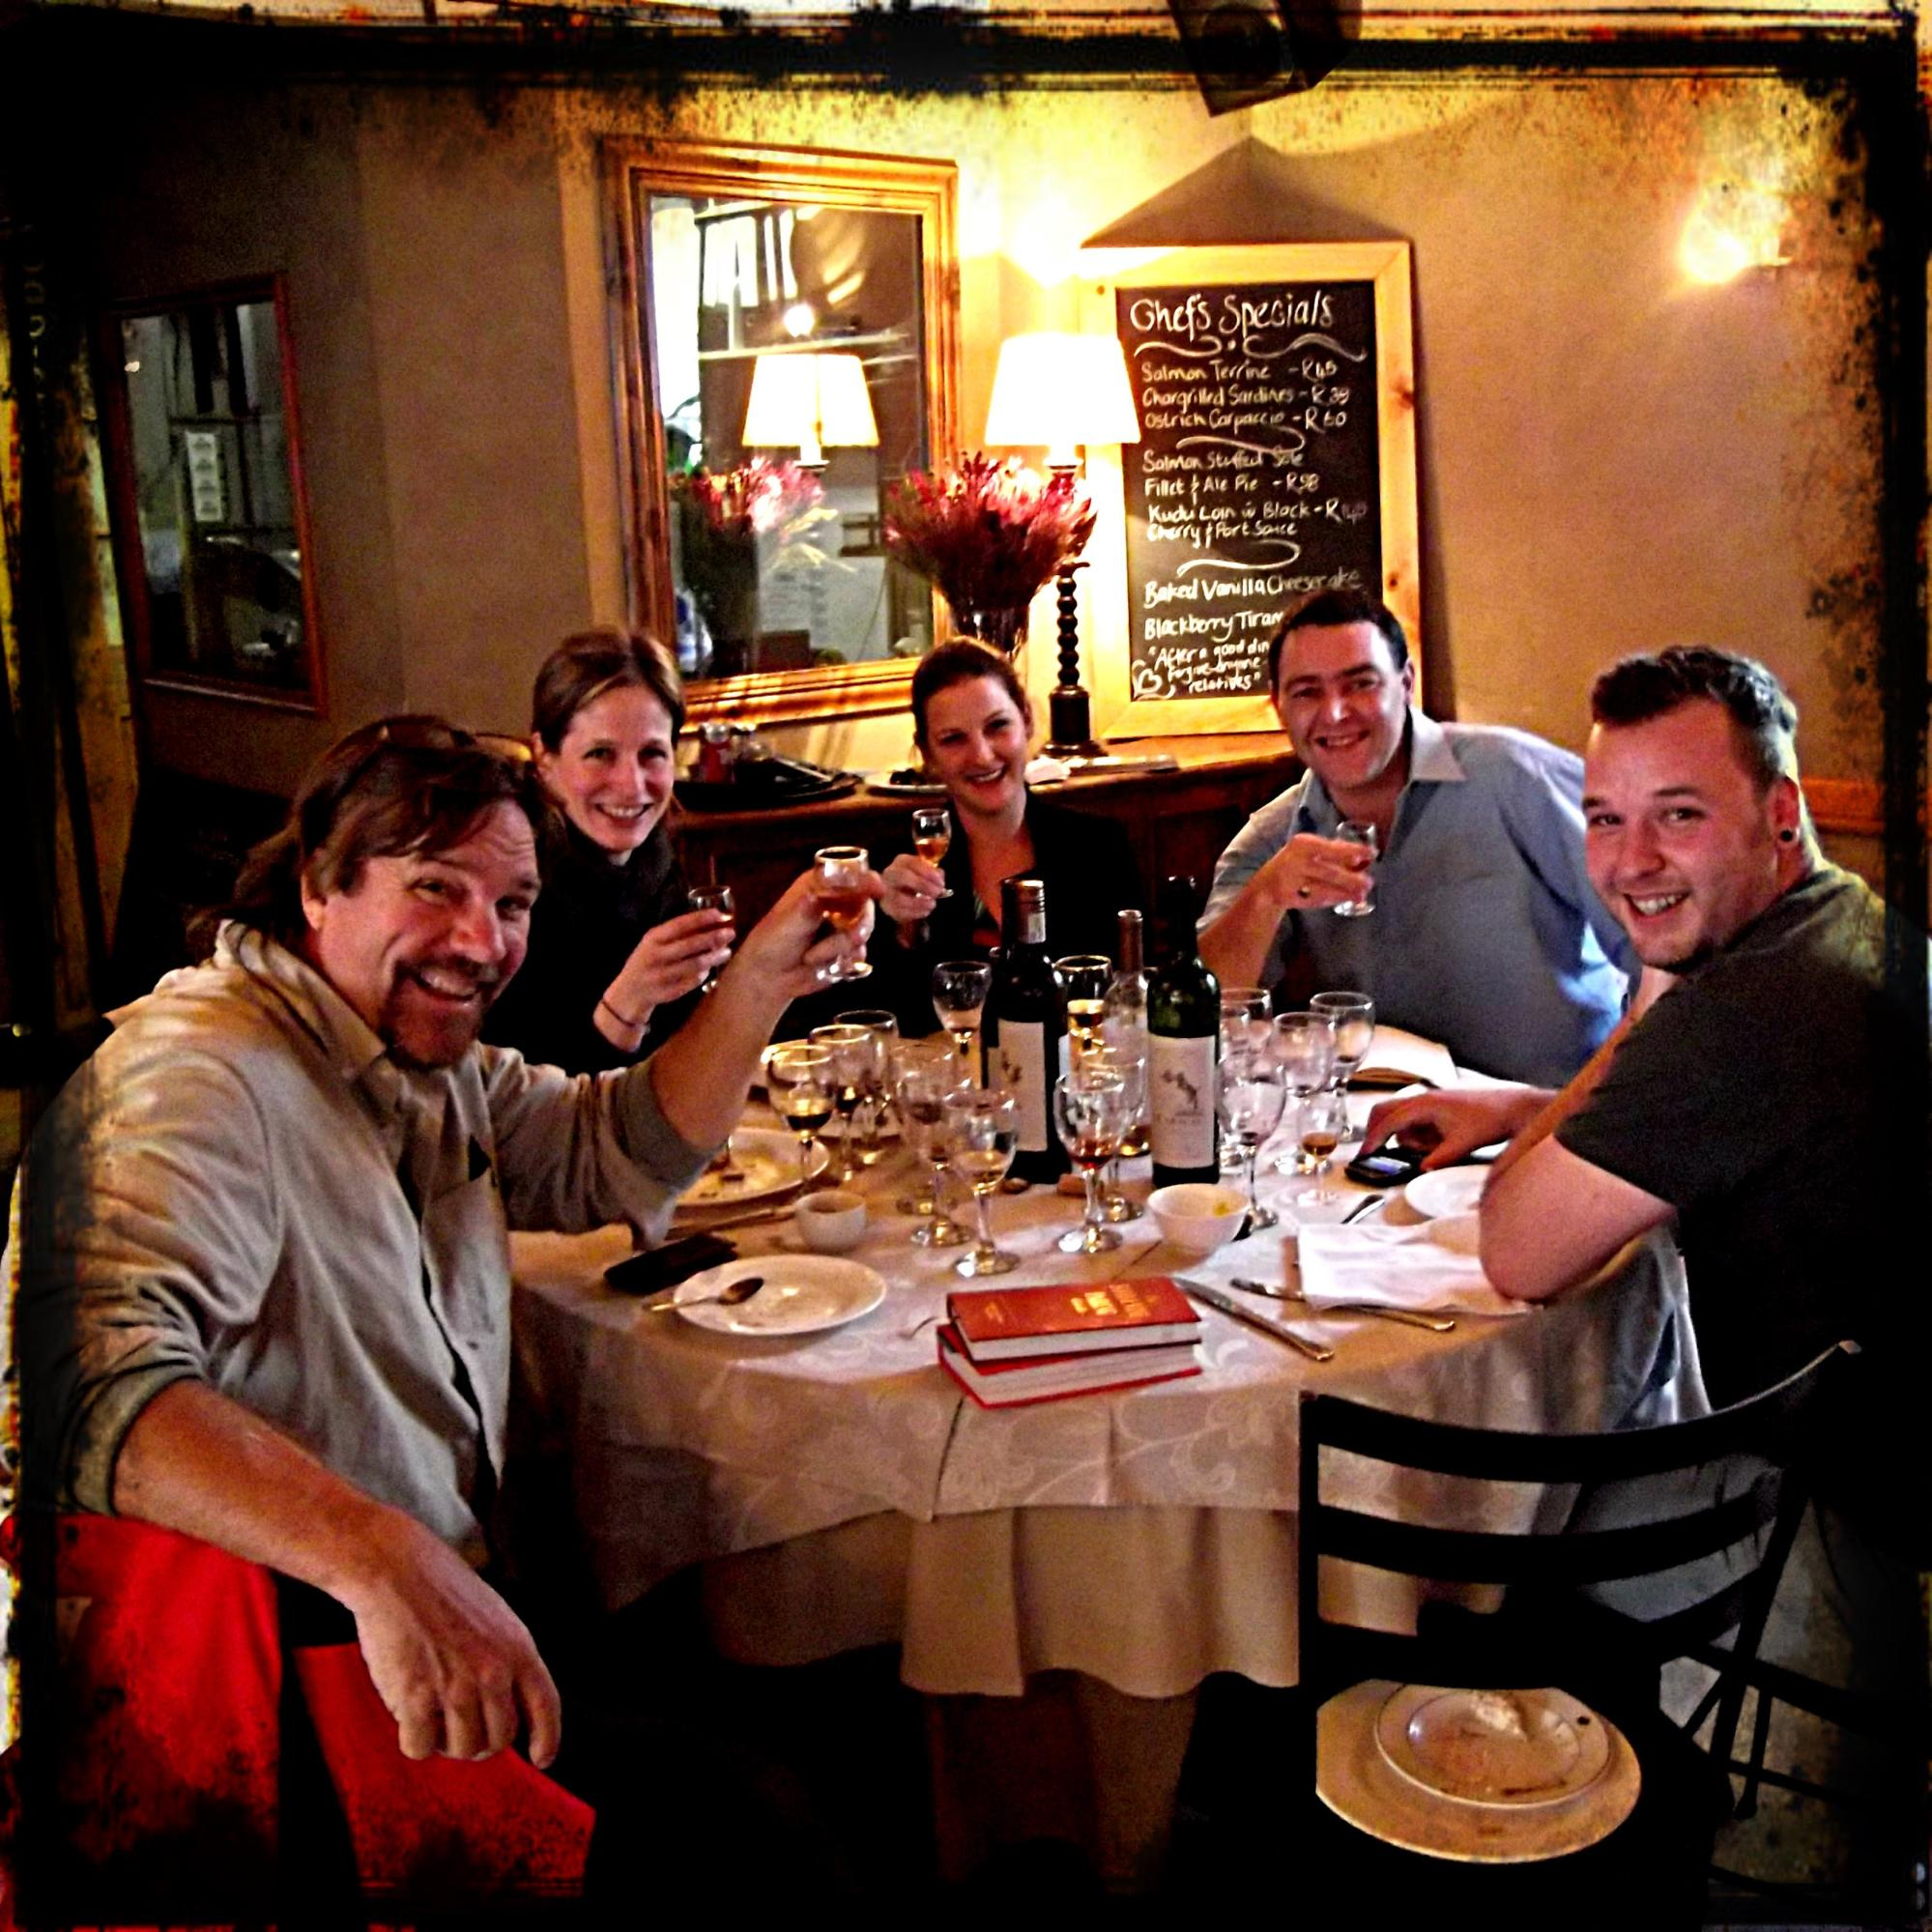 A Group of Friends Tasting Wine at a Restaurant